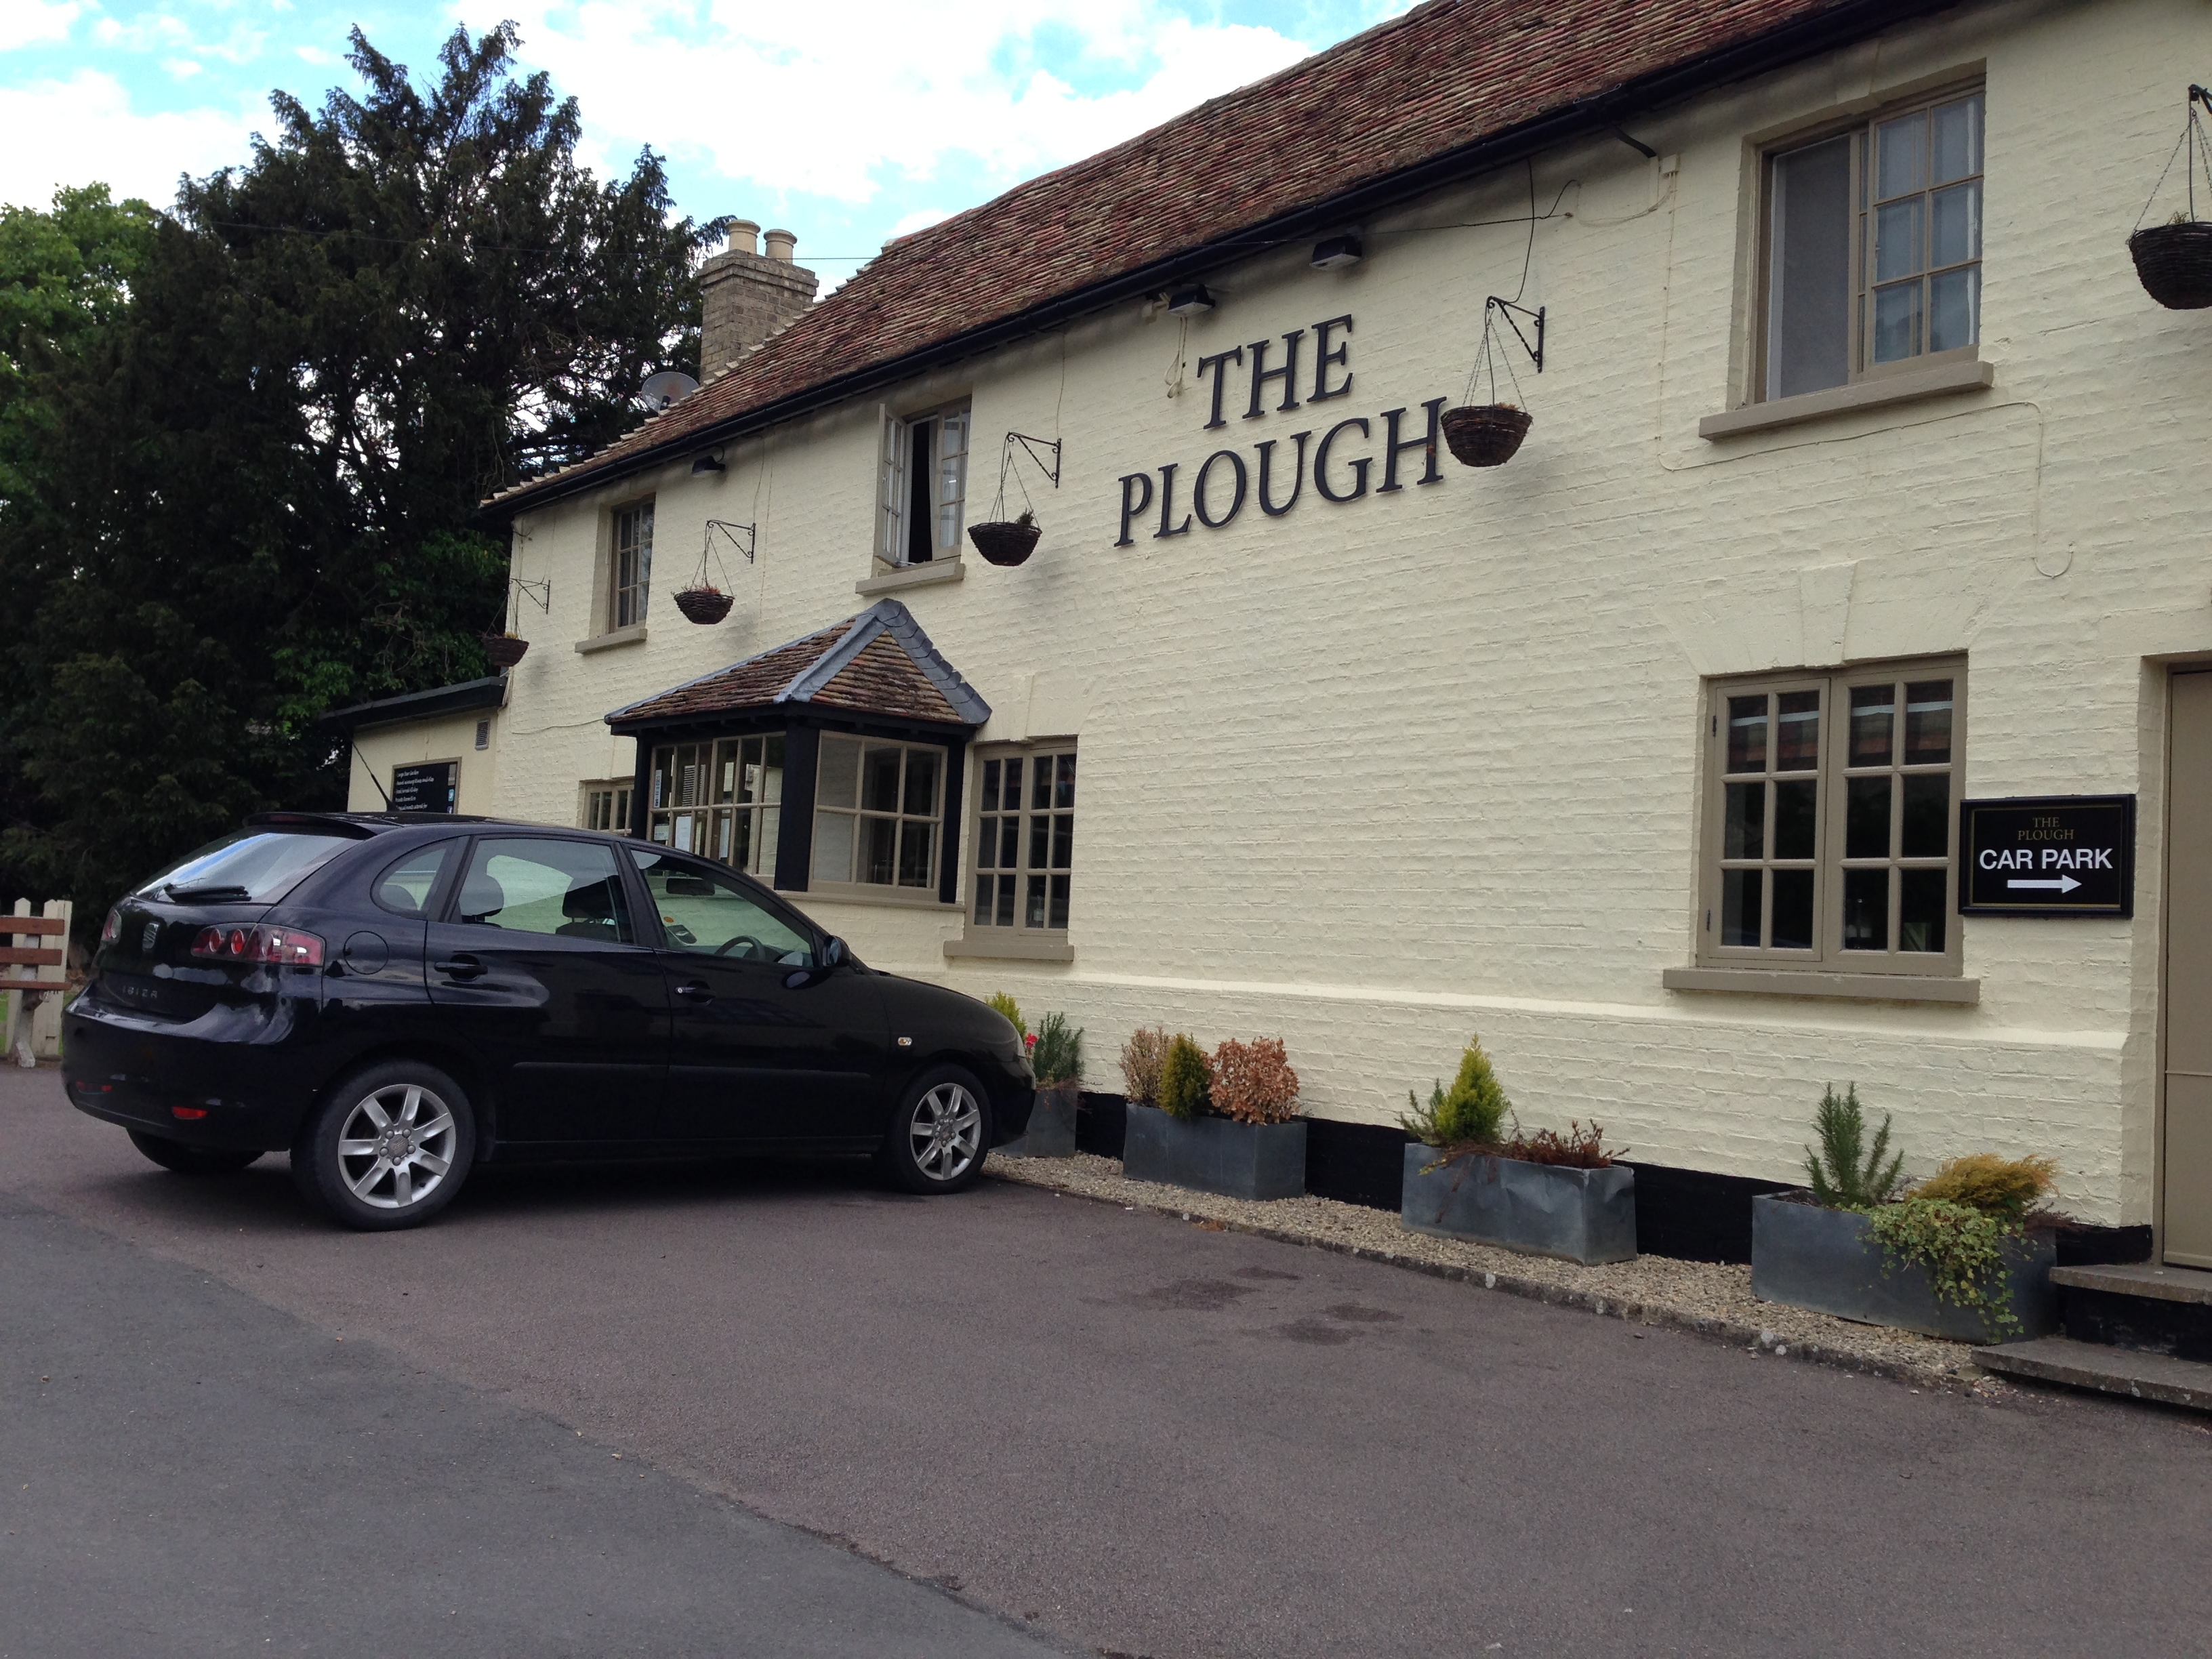 The Plough Coton Review